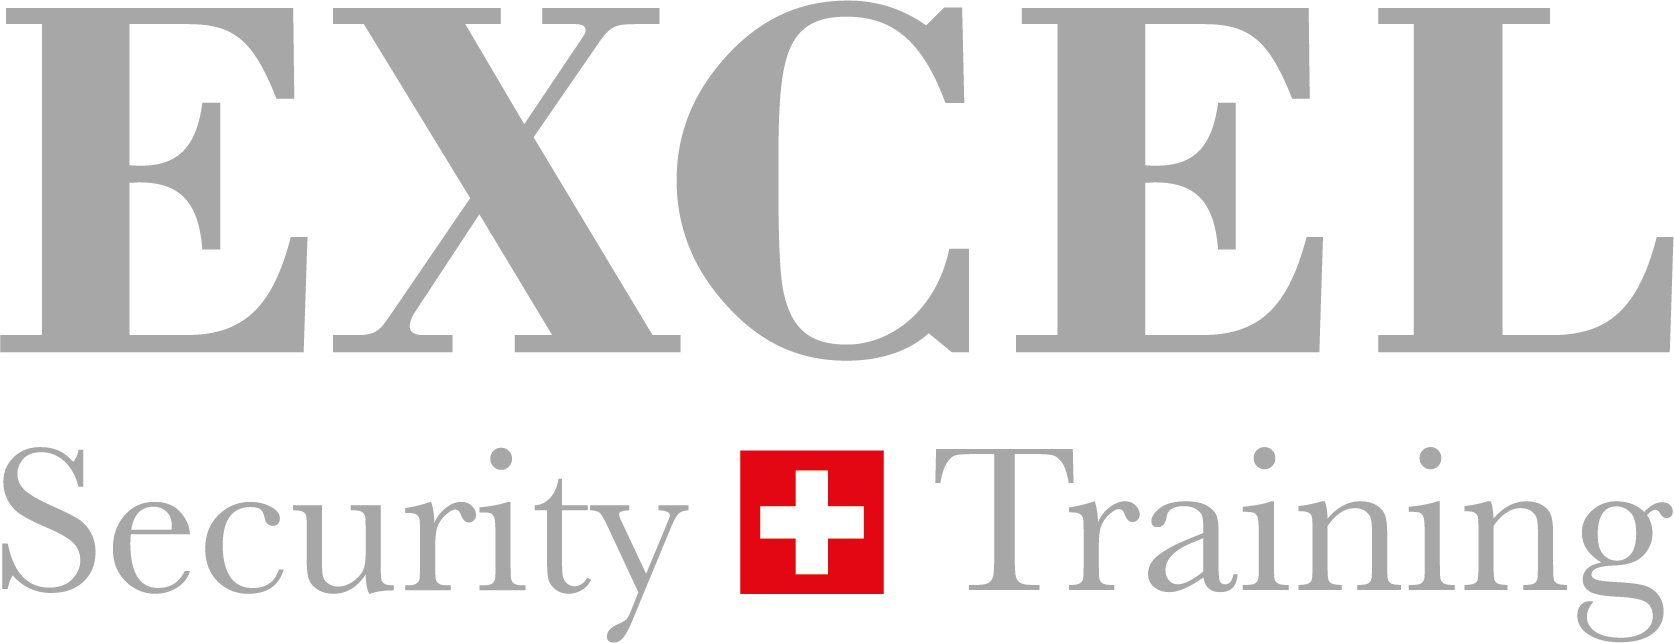 Excel Security Training